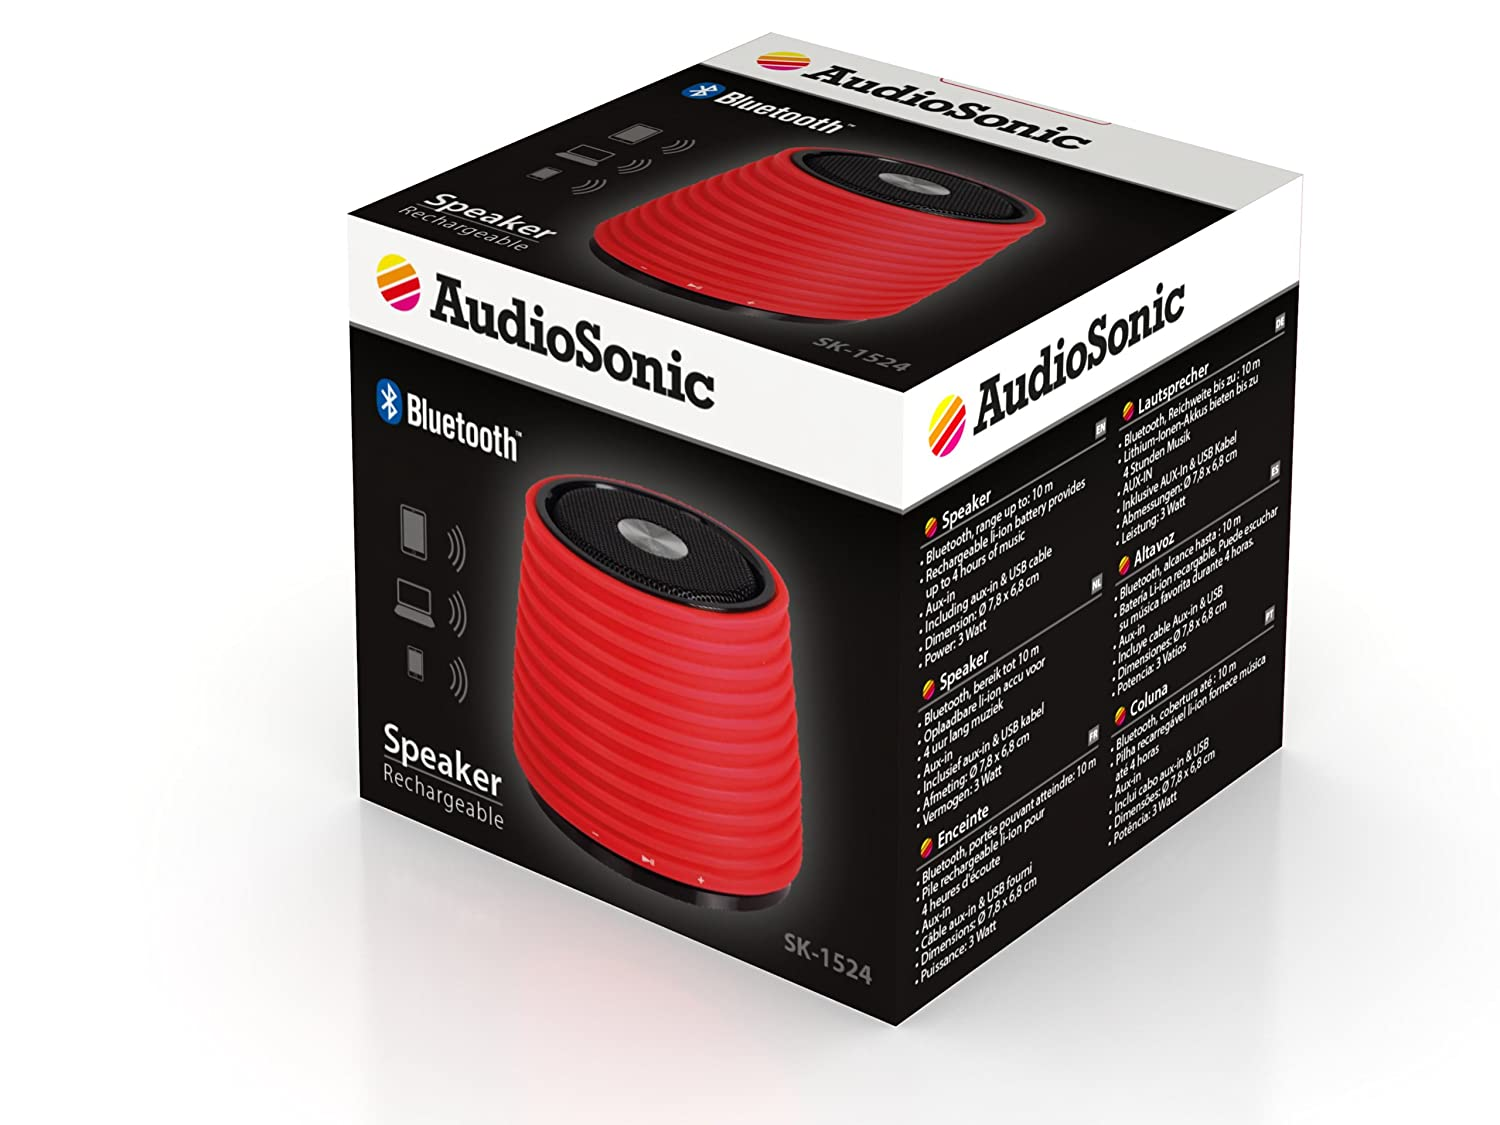 Audiosonic SK-1520 Enceinte Bluetooth Bleu